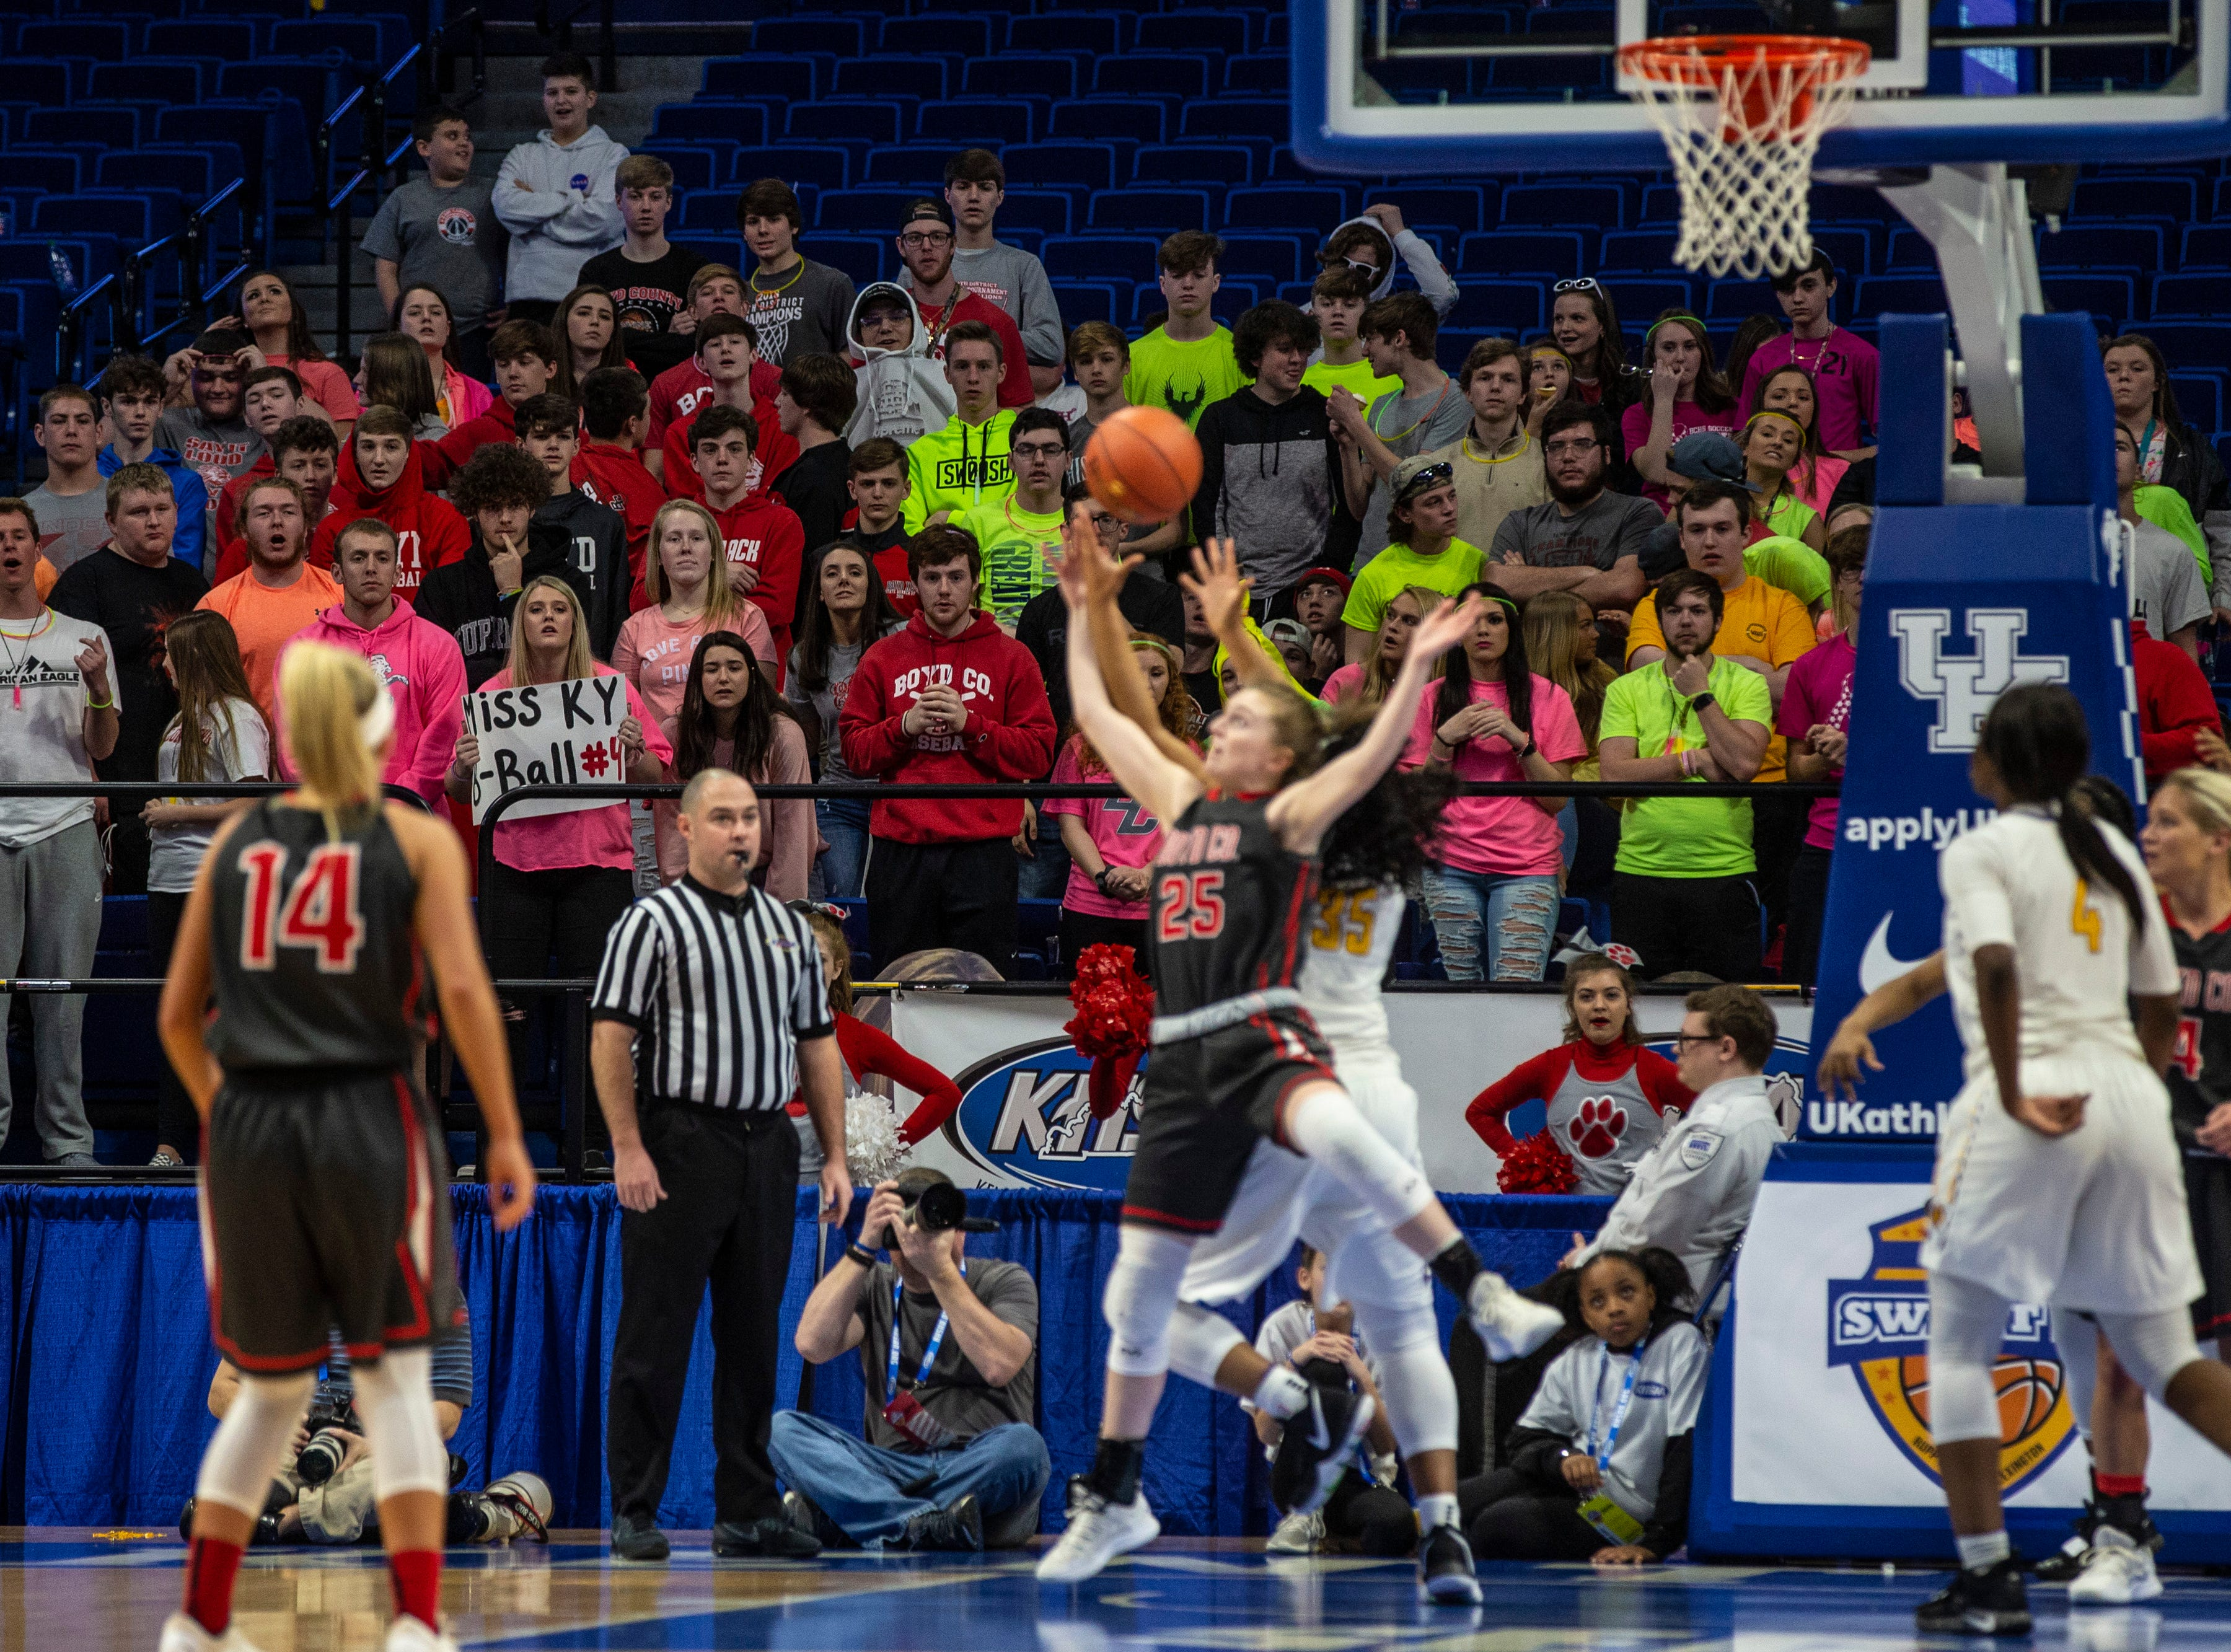 Boyd County fans look on as Boyd County took on Louisville Male in the KHSAA state basketball tournament in Rupp Arena. Male eliminated Boyd County 74-56. March 14, 2019